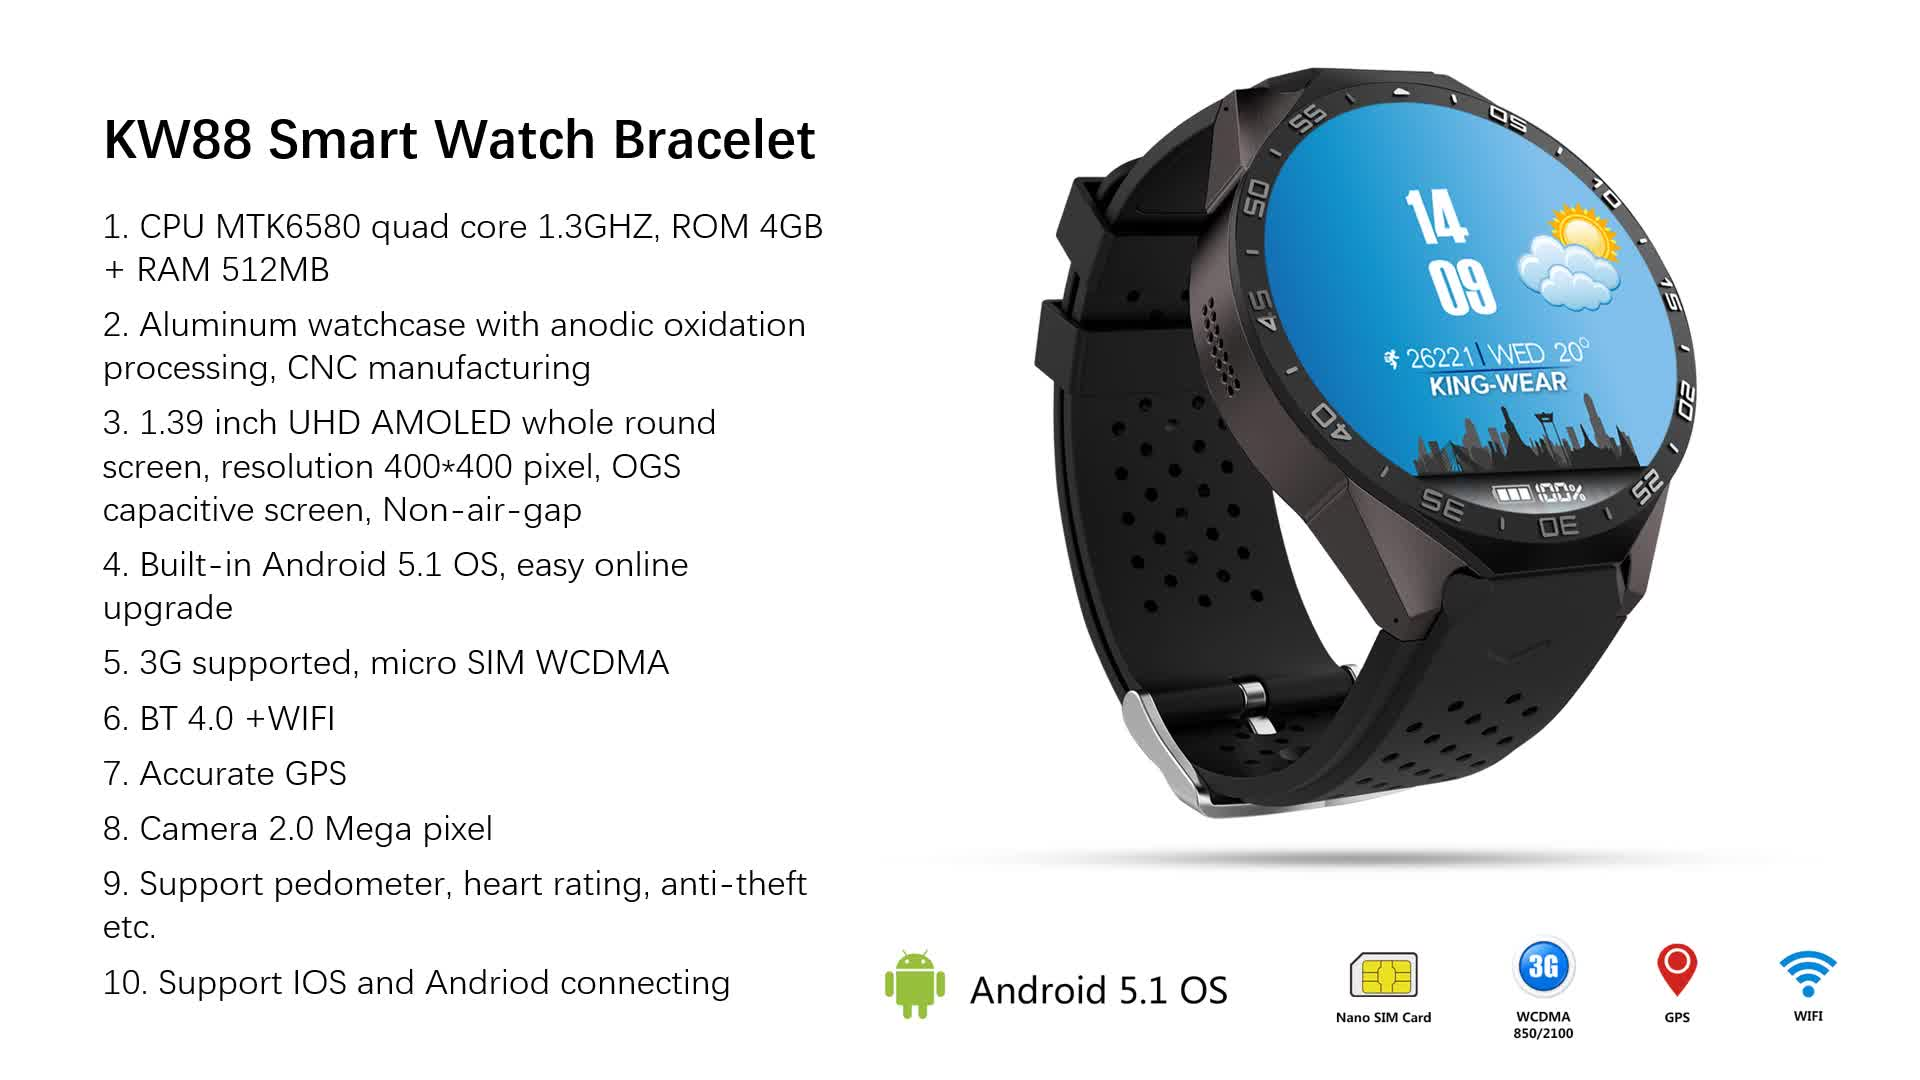 """High Quality 1.39"""" IPS Screen WCDMA 3G GPS Android Smart Watch KW88 With WiFi And 3G"""